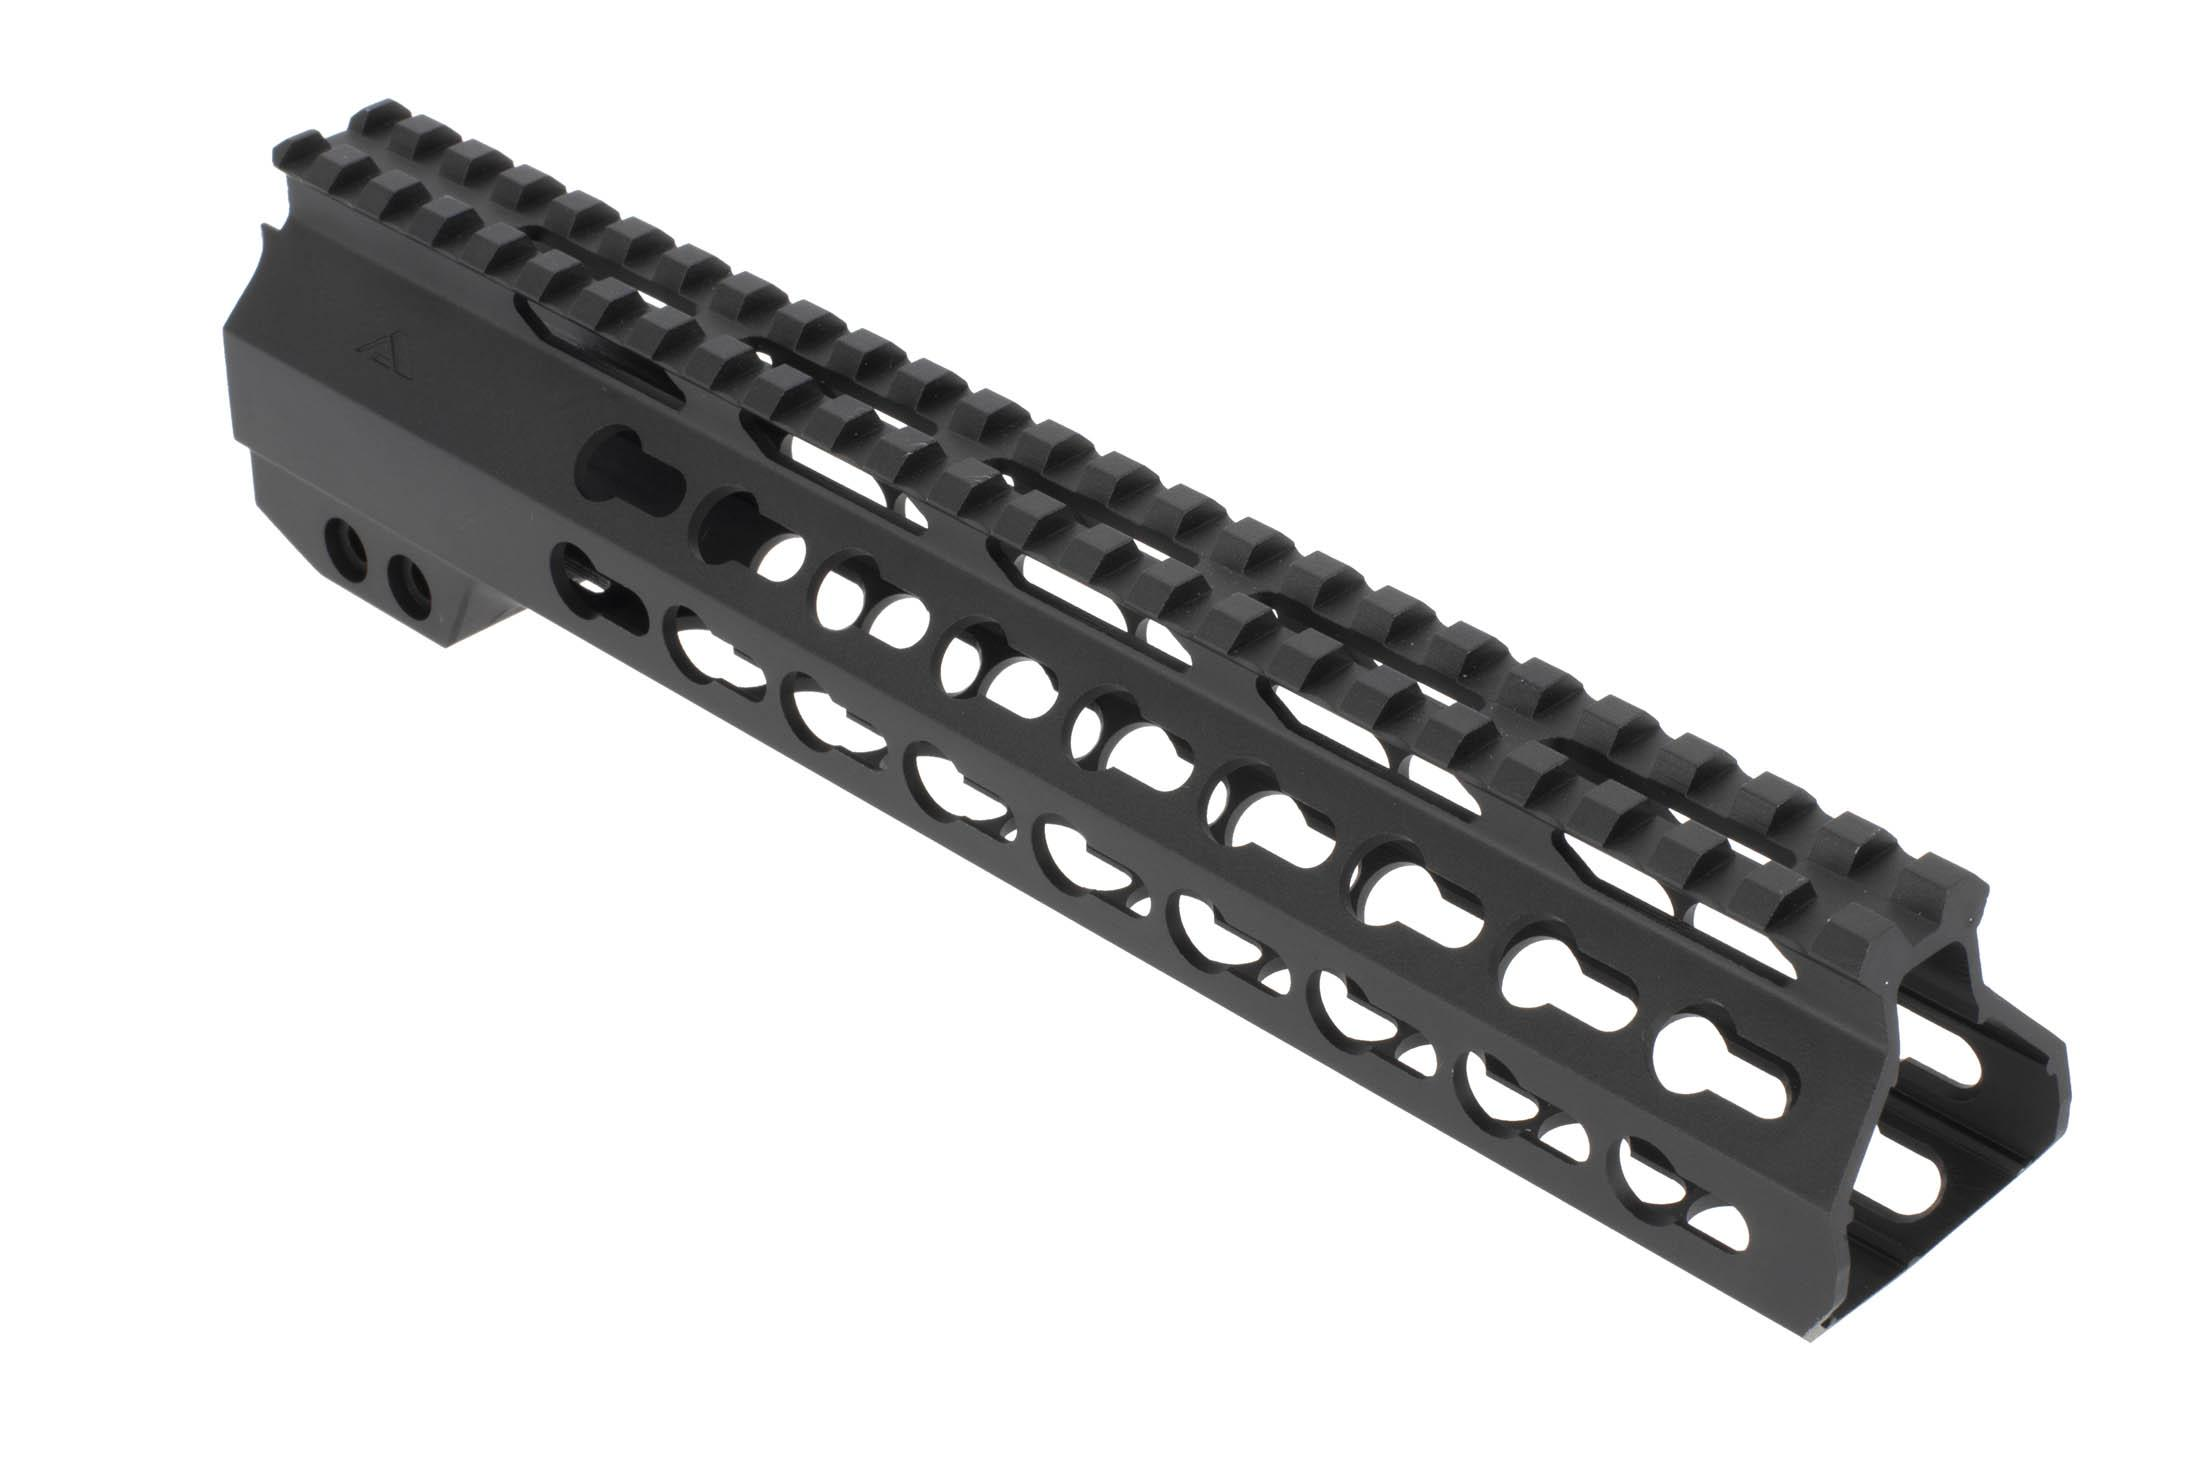 Aim Sports 10in Gen II Free float KeyMod AR-15 Handguard Black